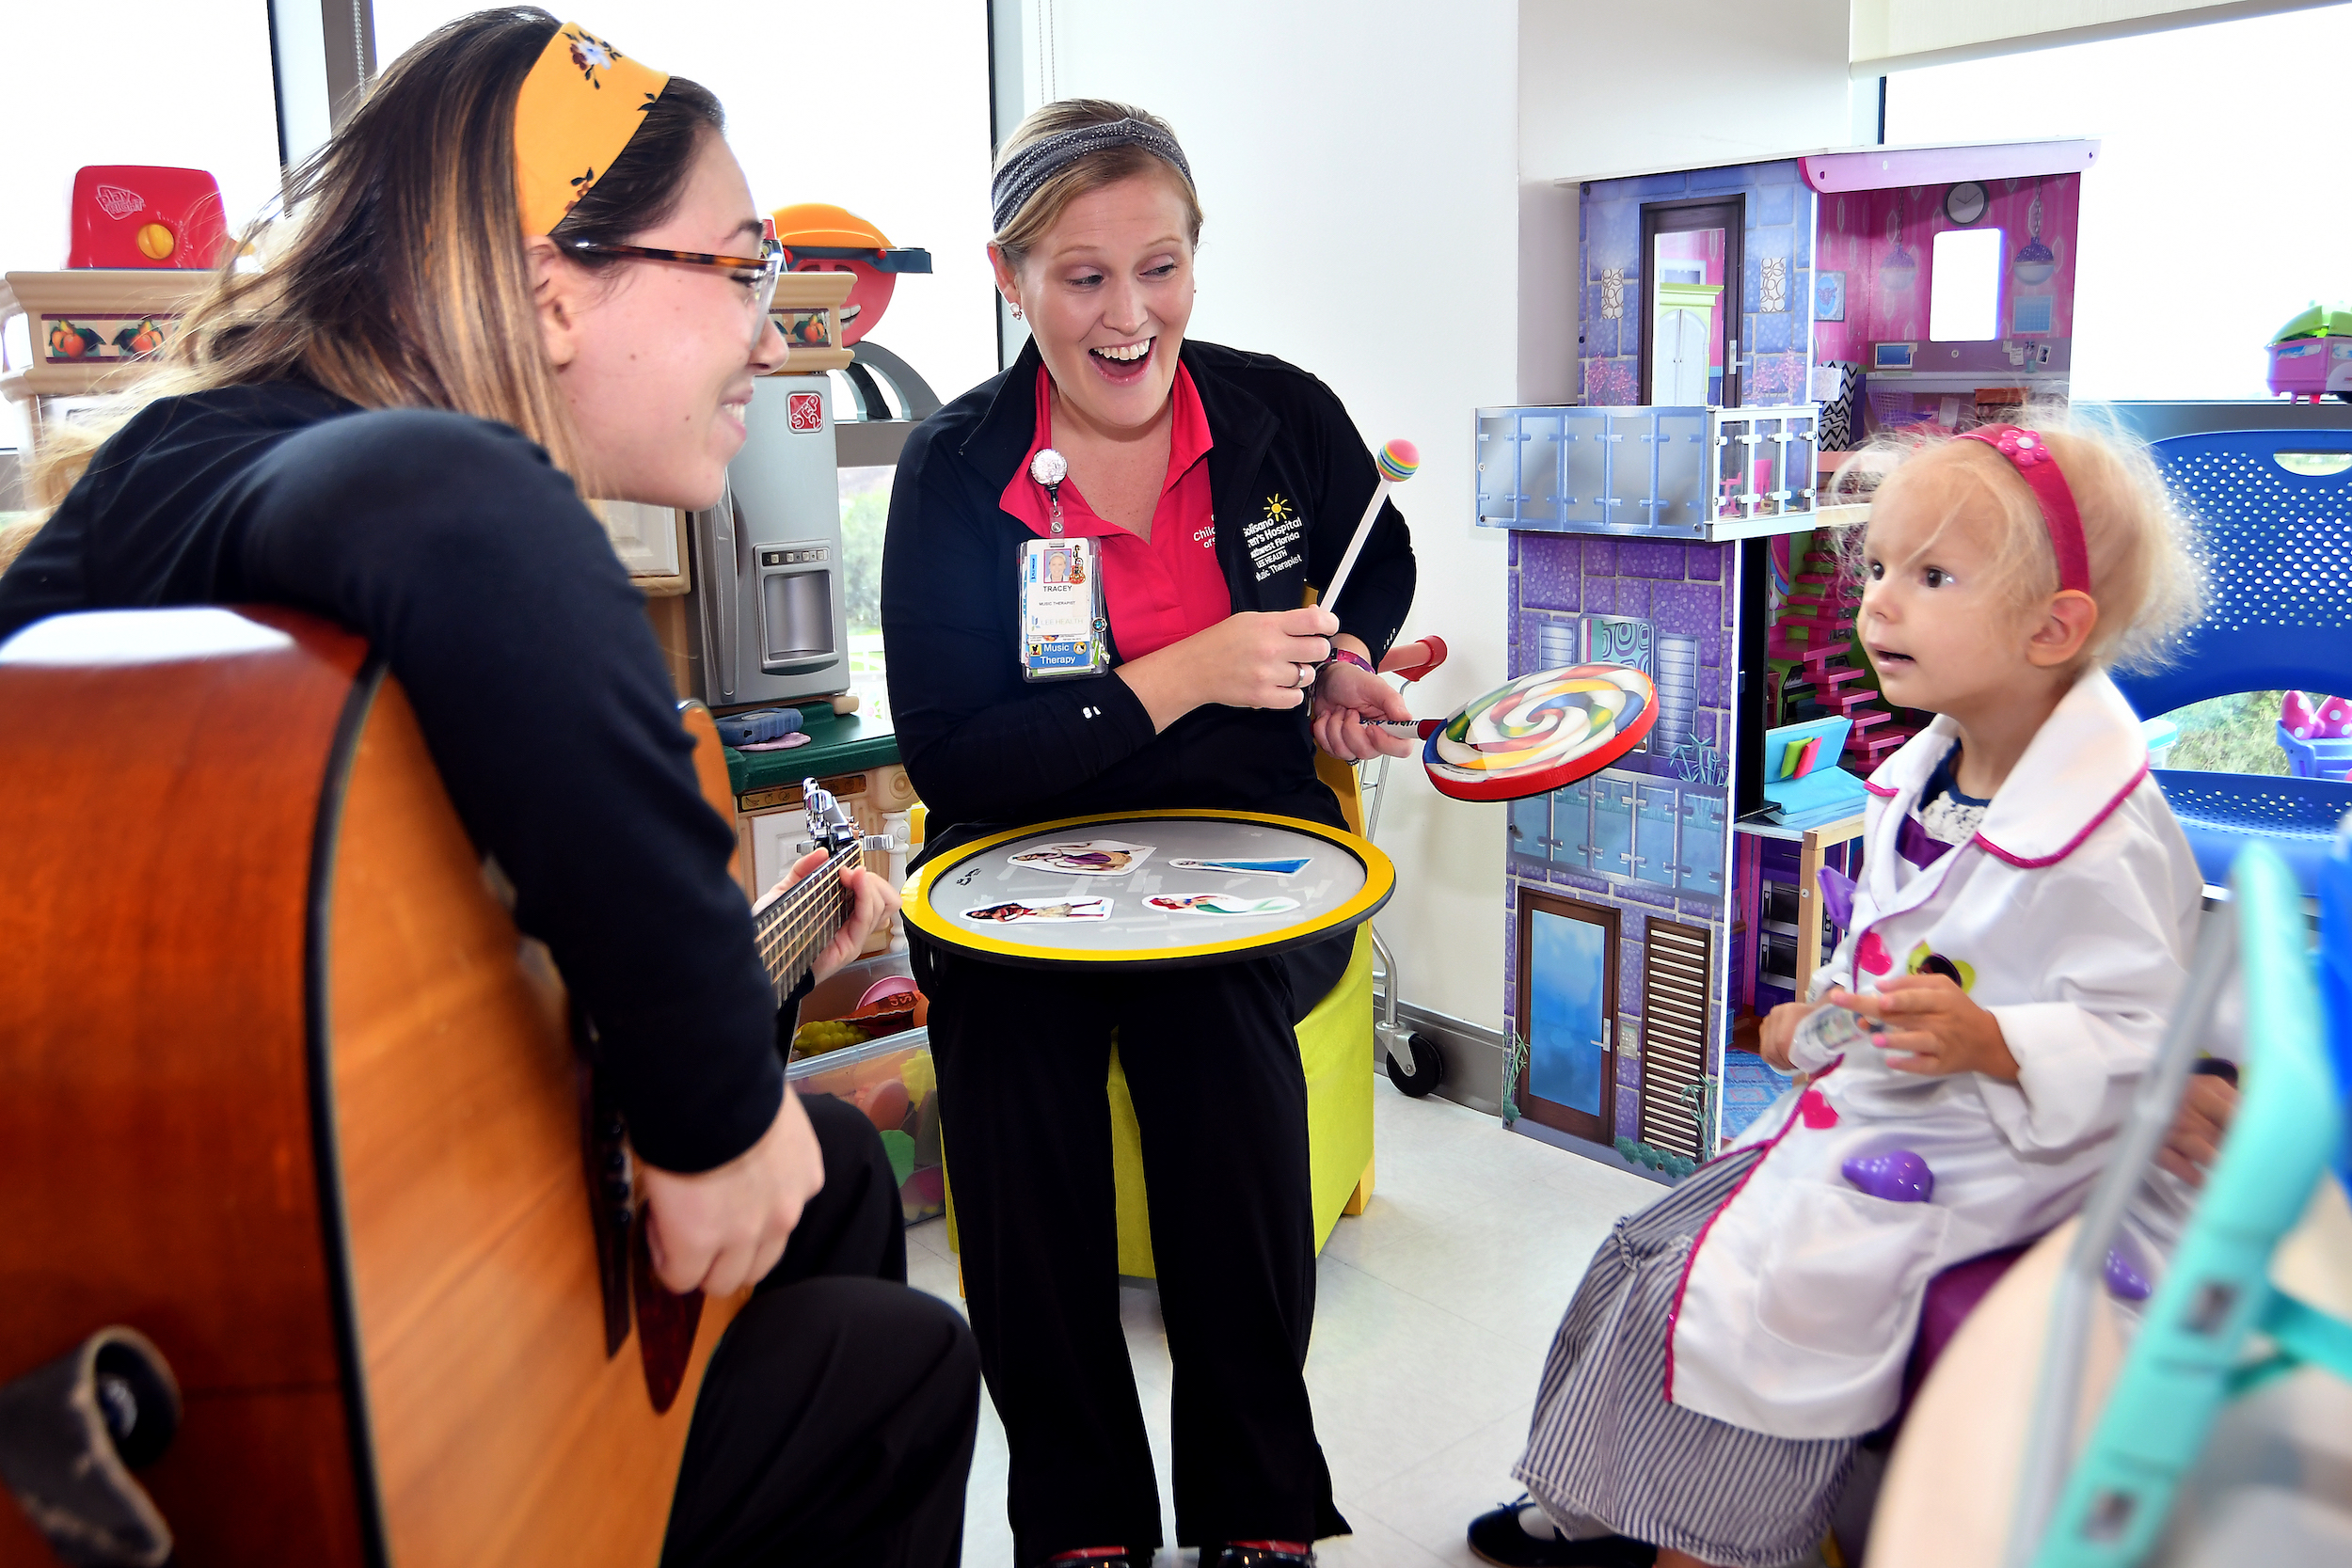 Florida State University Music therapy internEmily Offenkrantz and Tracey Failla center and FGCU intern works with a patient Milda Chartier  age 3 at Golisano Children's Hospital of SWF in Fort Myers ,Wednesday, Nov. 13, 2019. (Chris Tilley Photo/Chris Tilley)